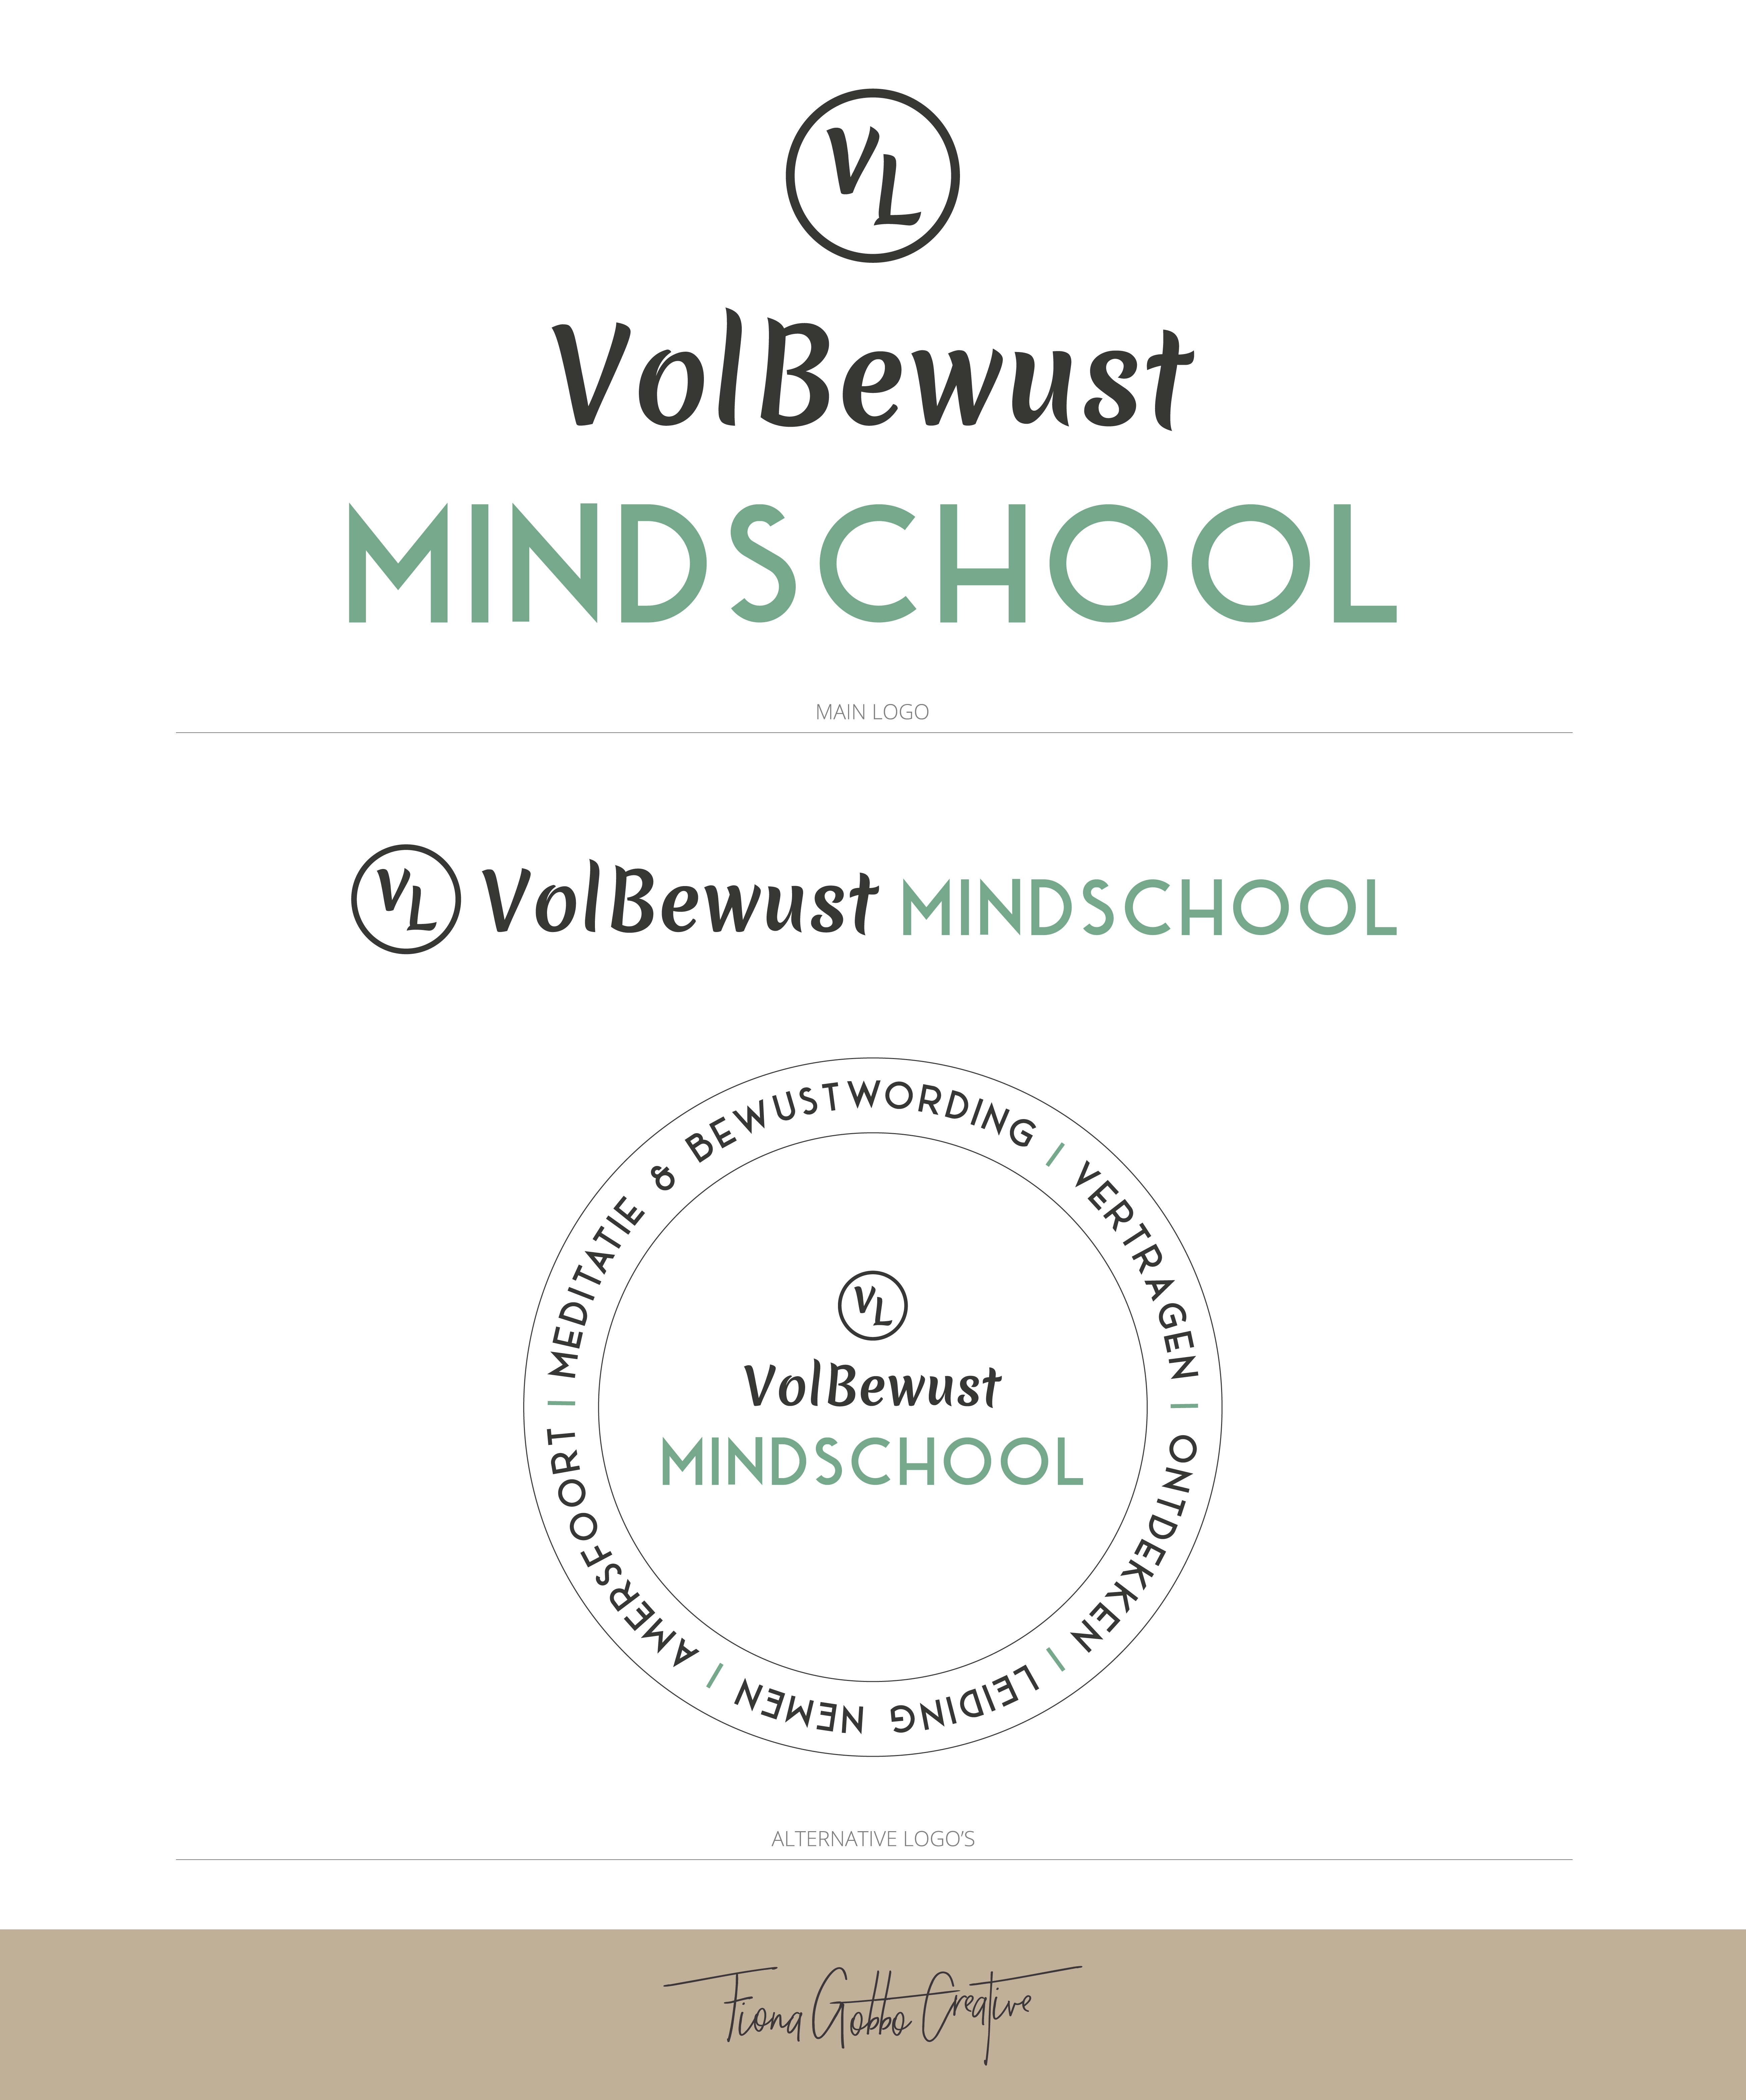 Alt text: VOLBEWUST MINDSCHOOL | LOGO DESIGN FOR A NEW LABEL | designing a Starterlogo that is recognizable but still has its own identity